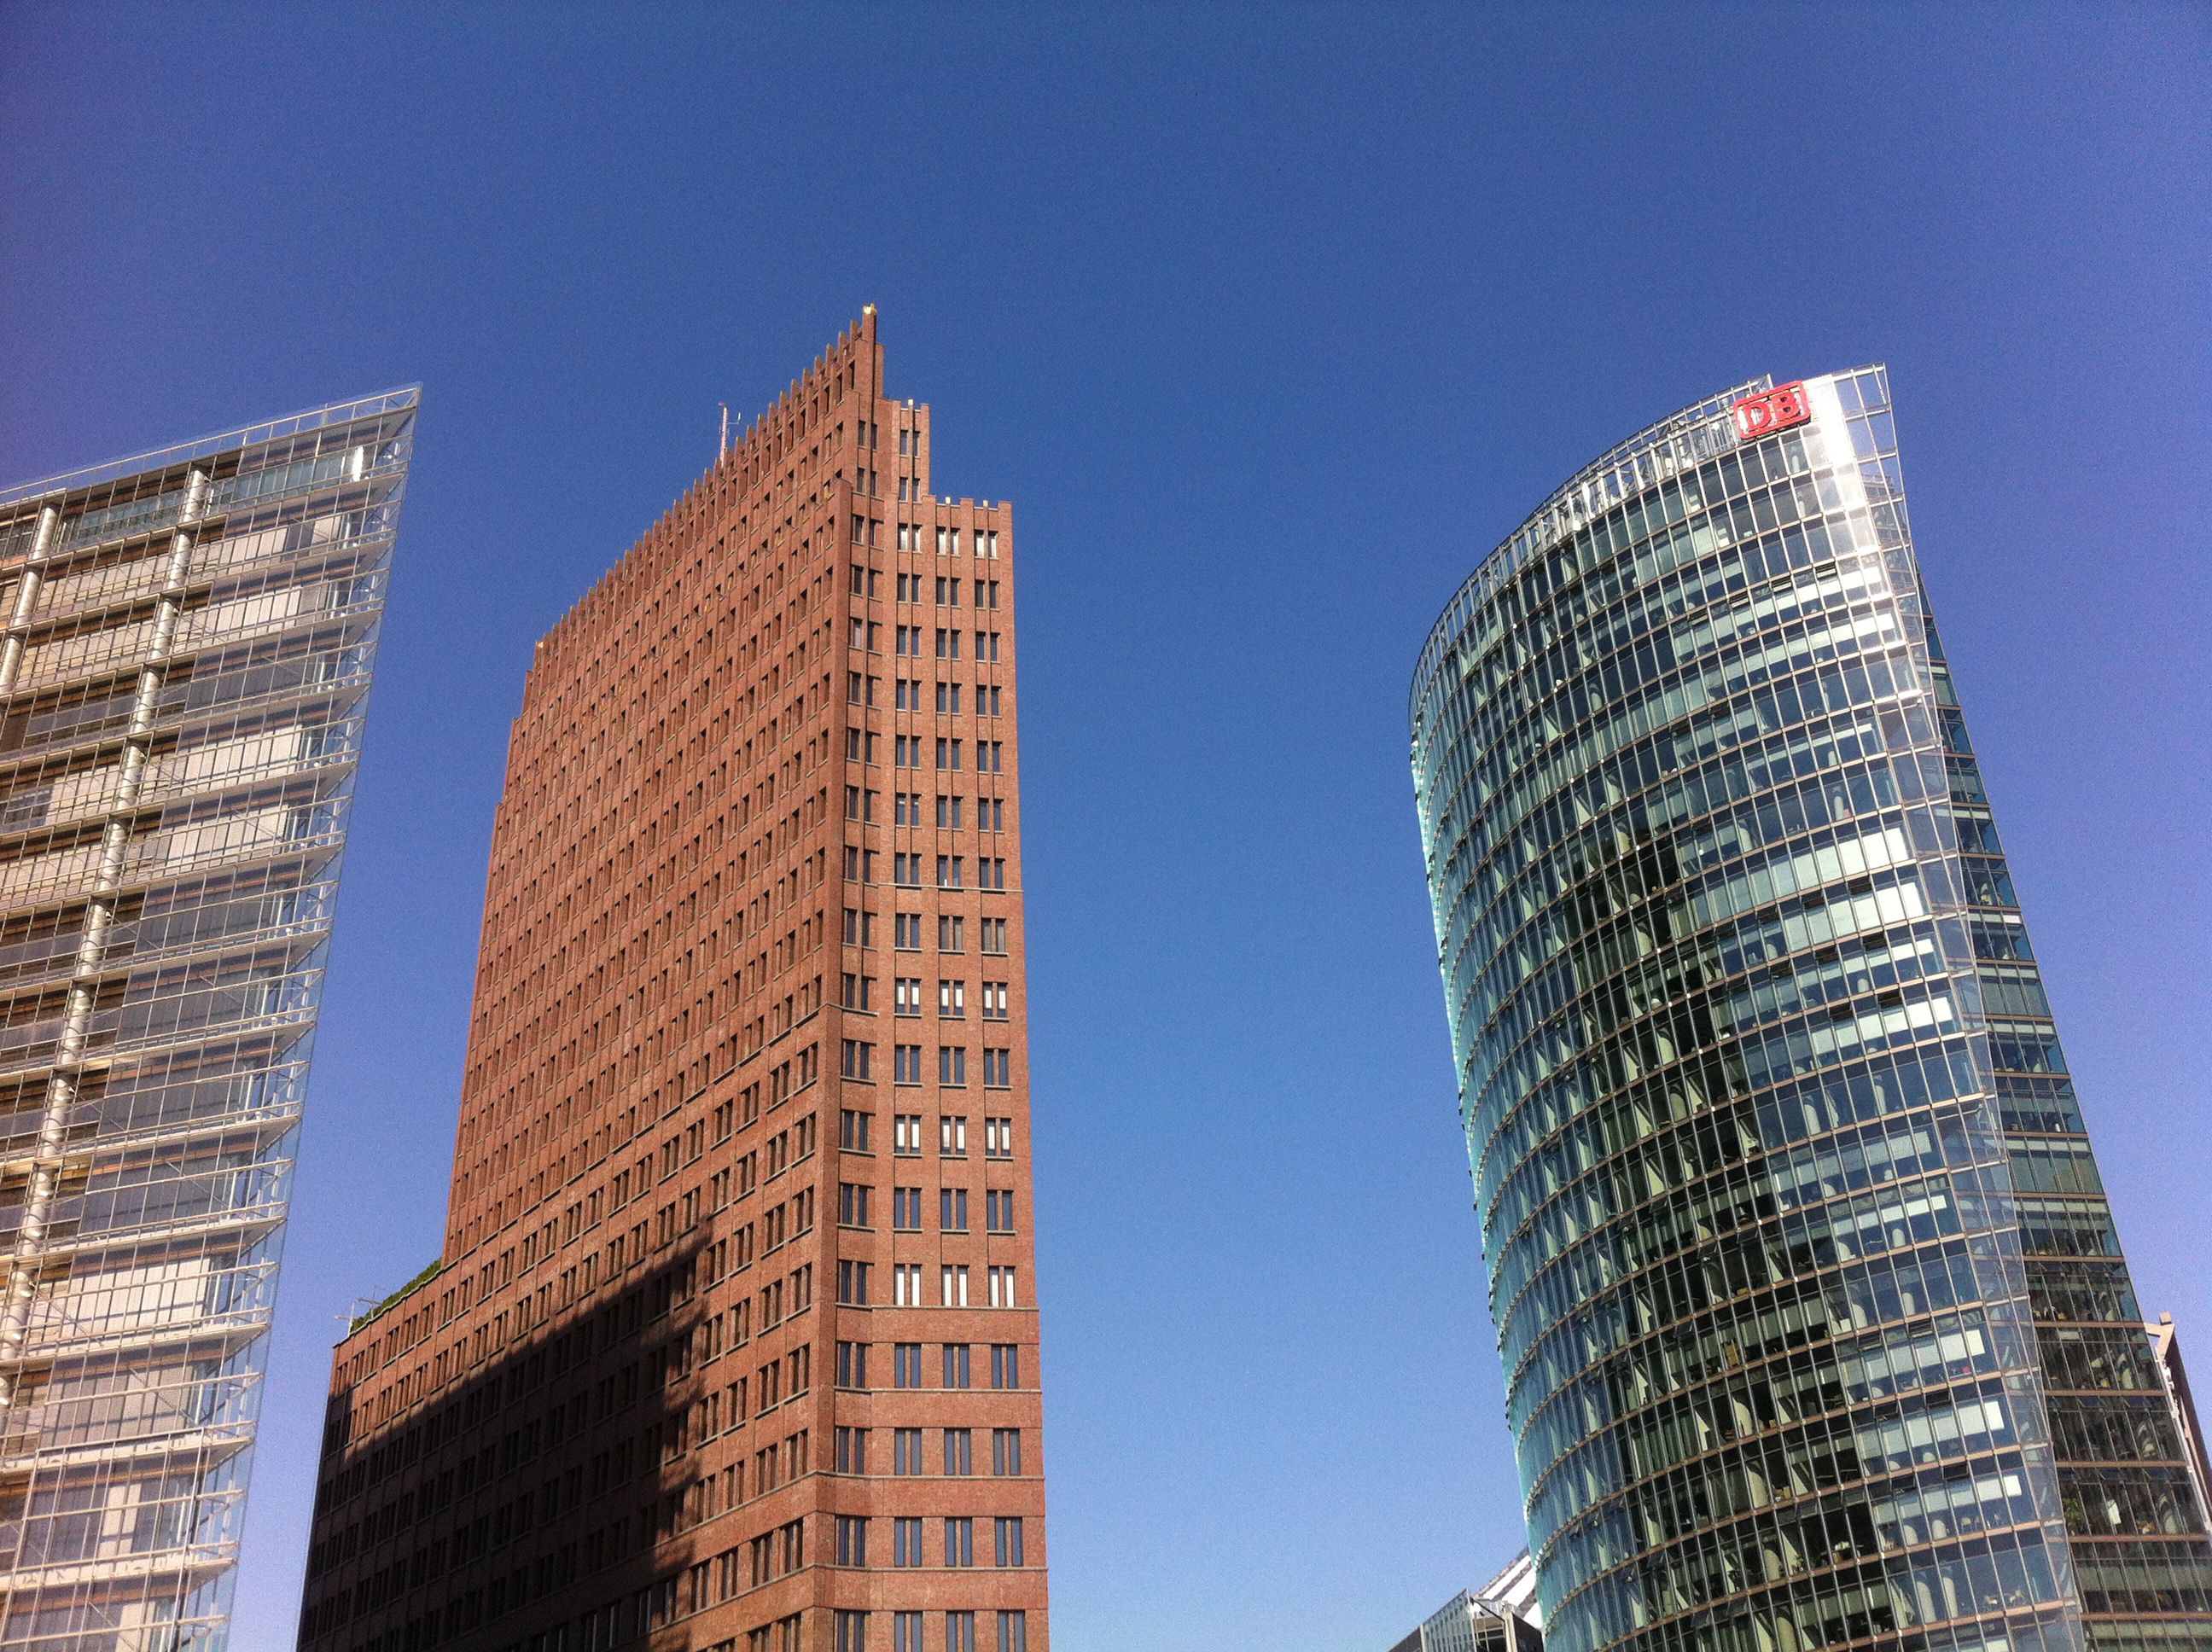 Berlin Potsdamer Platz Skyscraper Buildings